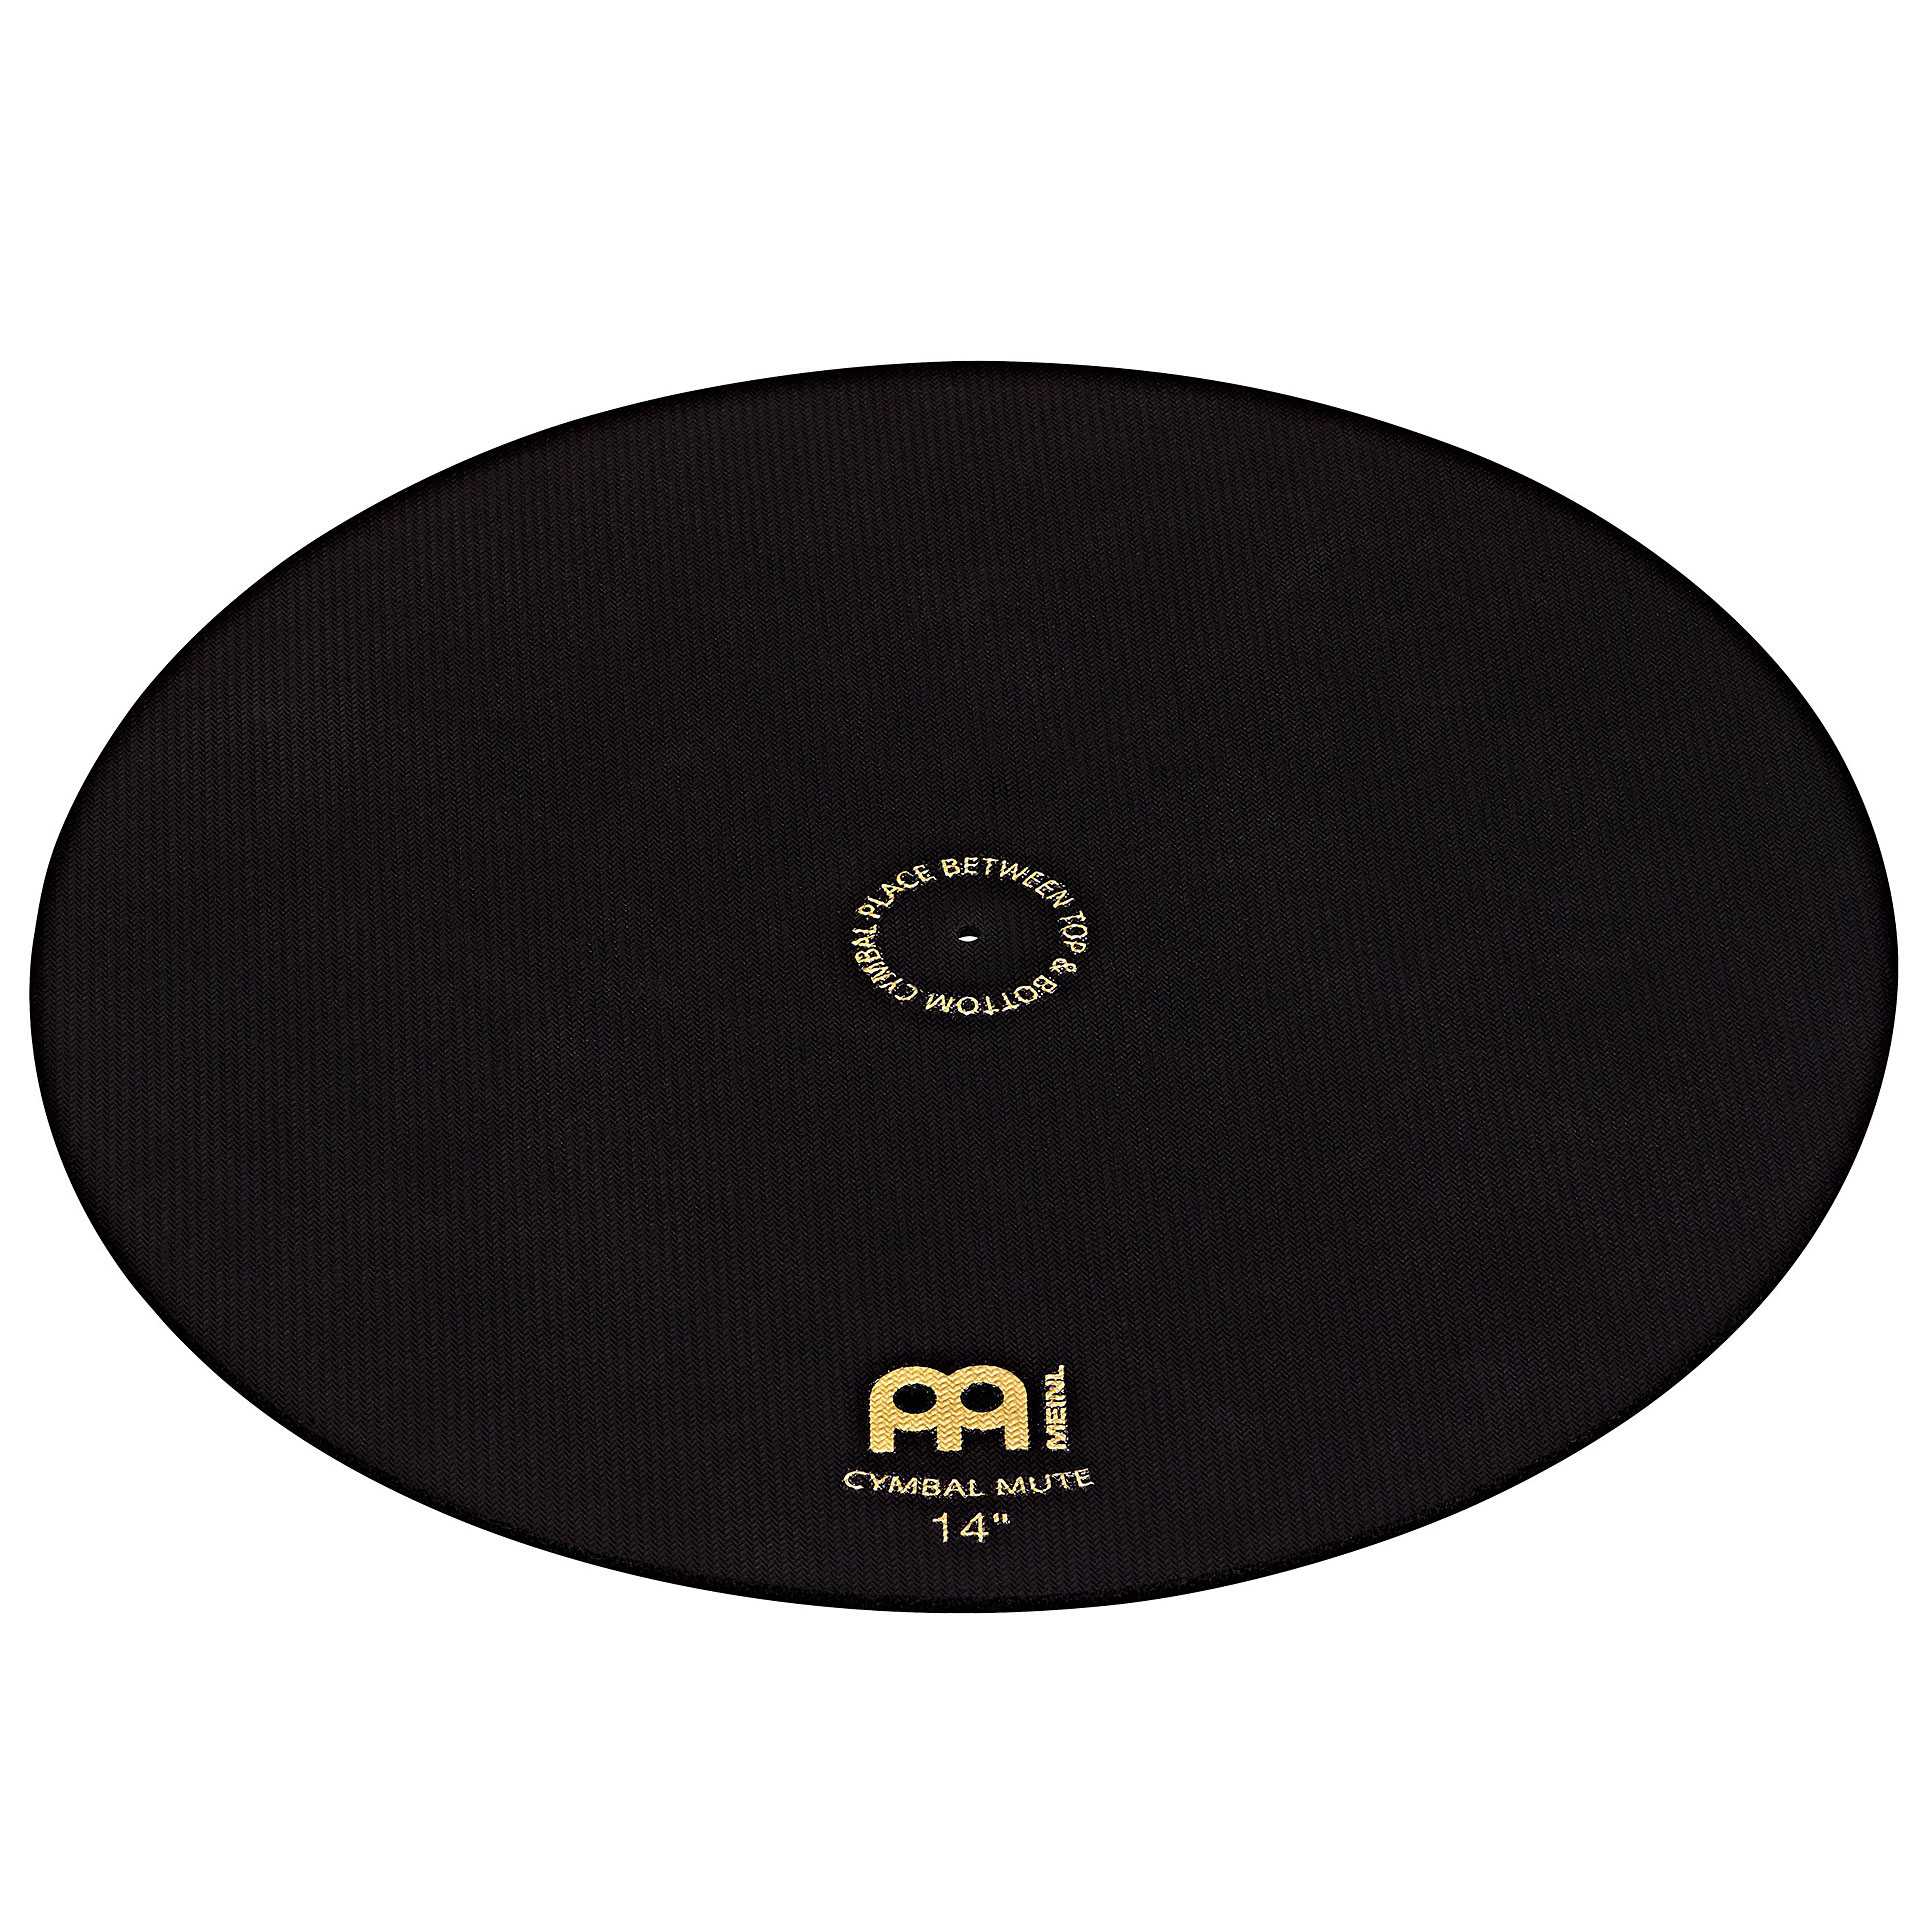 meinl 14 cymbal mute practice pad musik produktiv. Black Bedroom Furniture Sets. Home Design Ideas